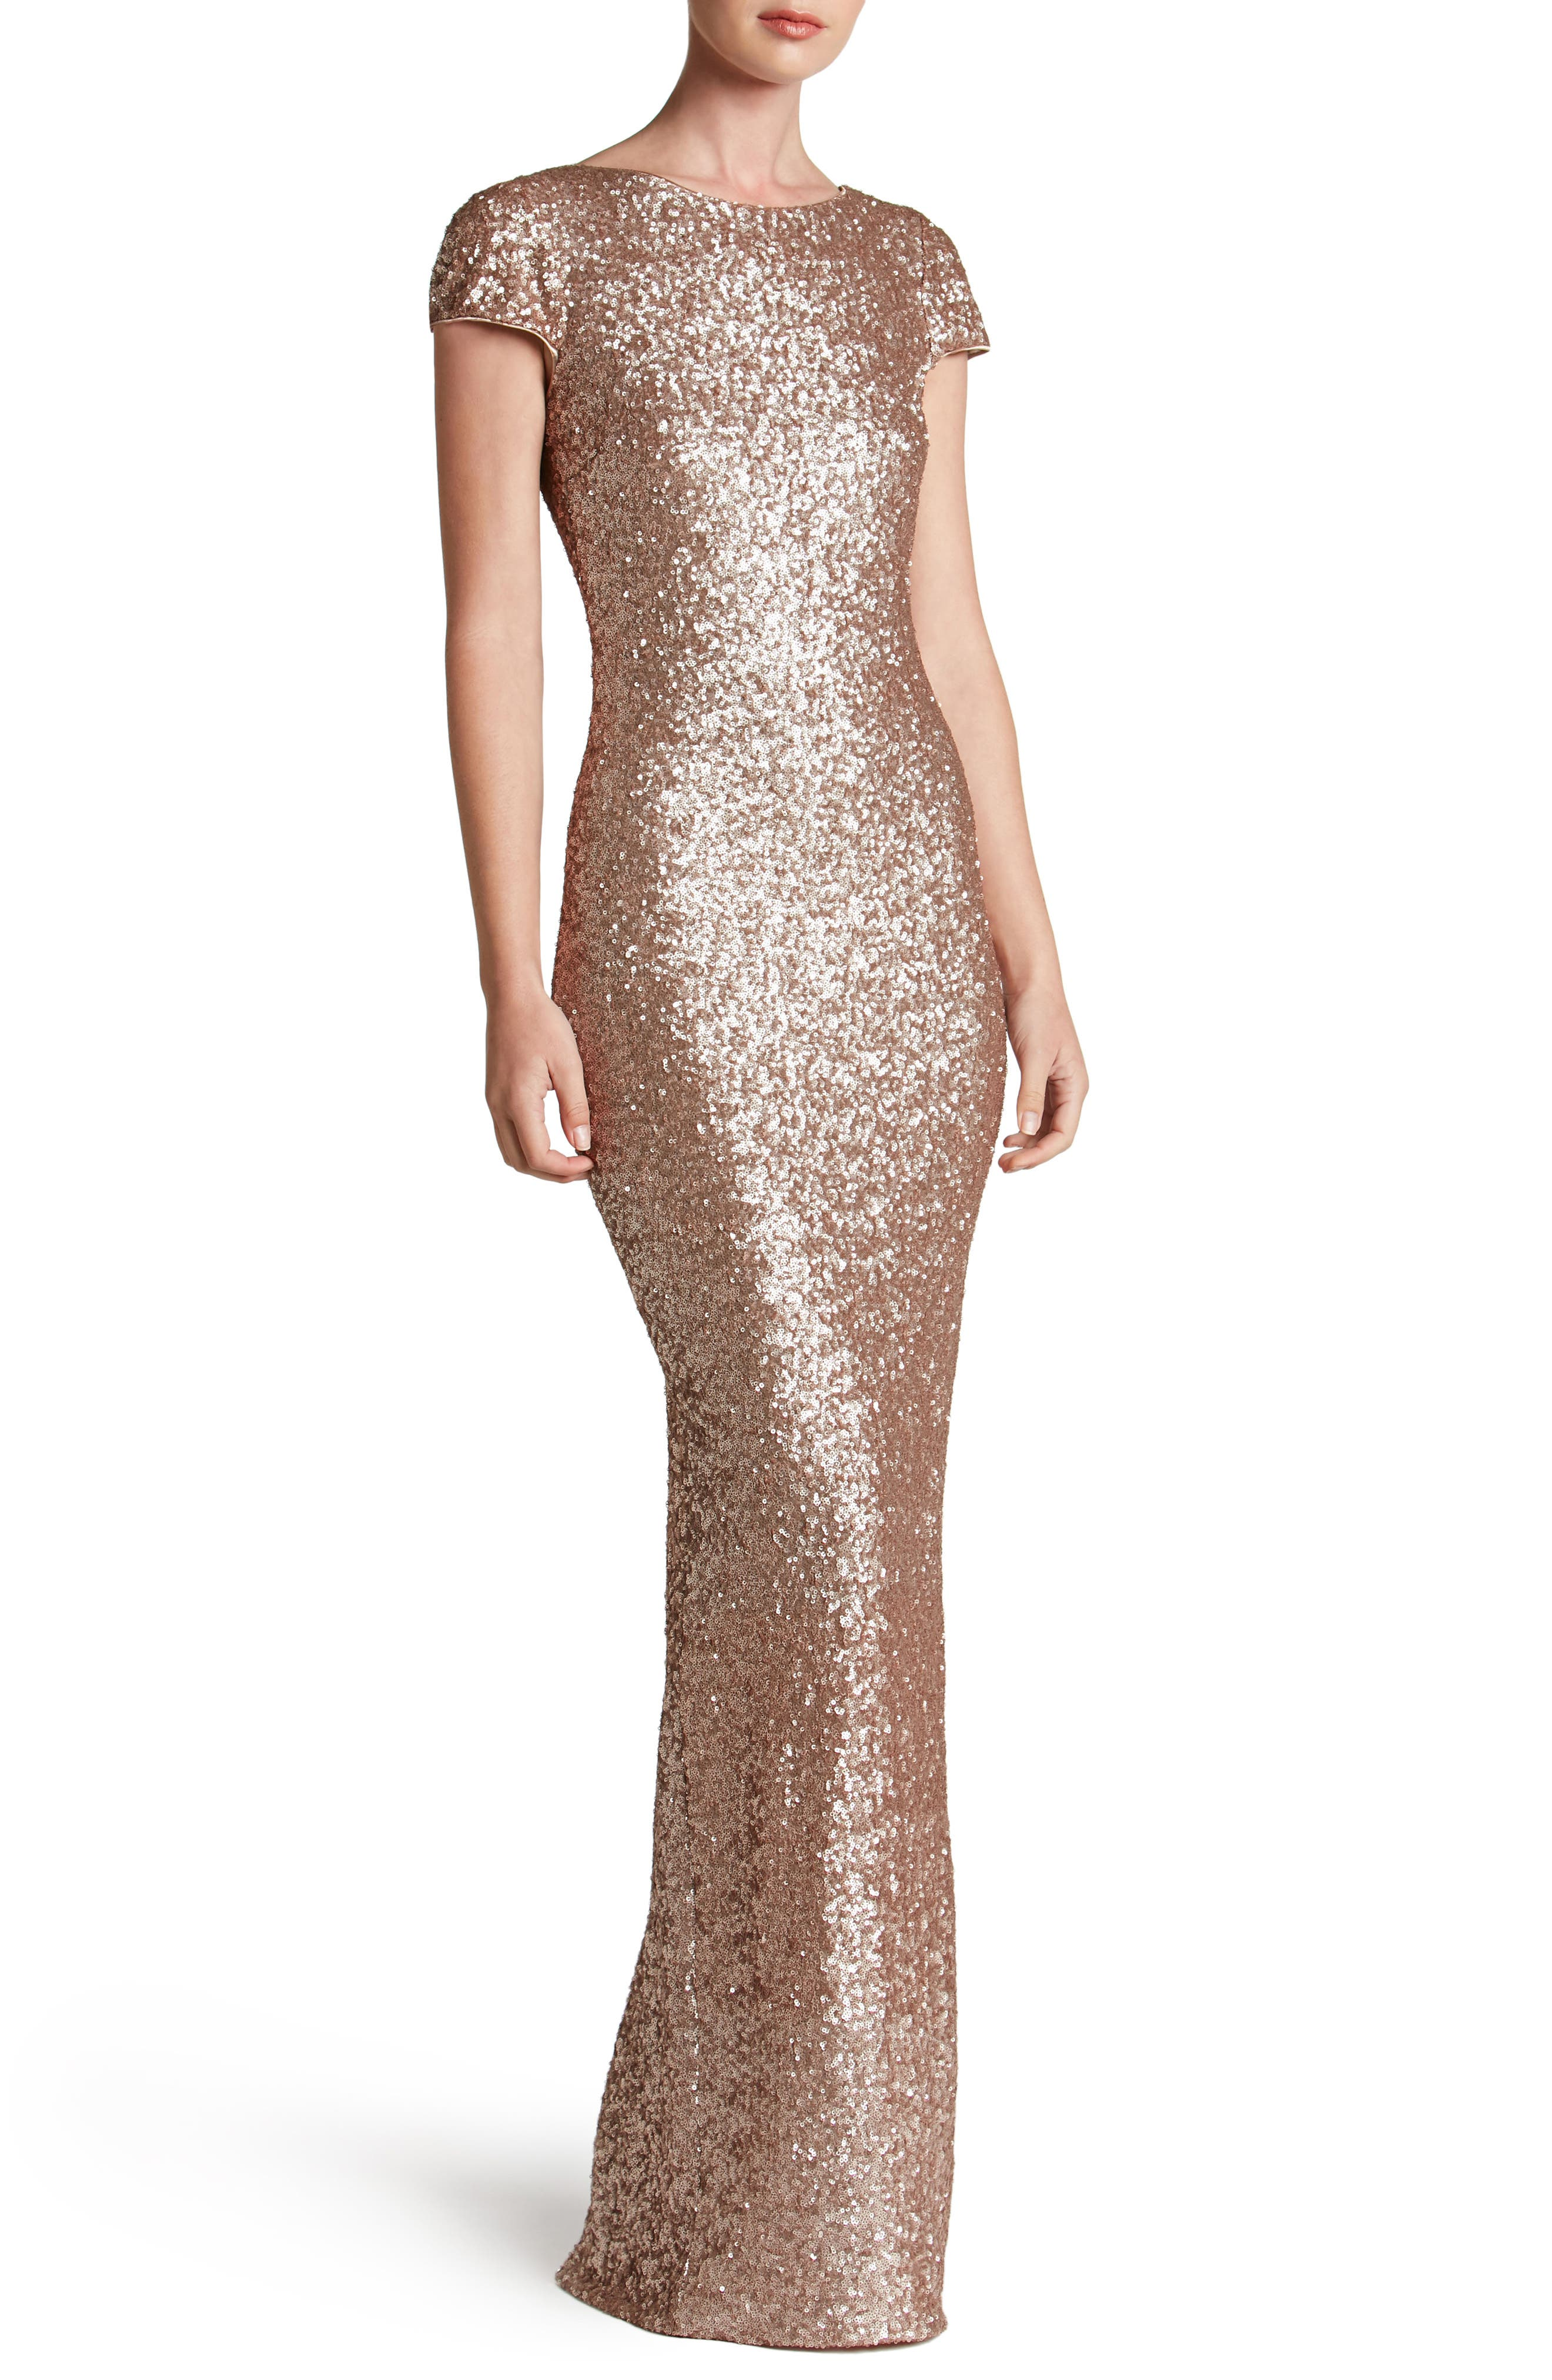 Alternate Image 1 Selected - Dress the Population Teresa Body-Con Gown (Nordstrom Exclusive)